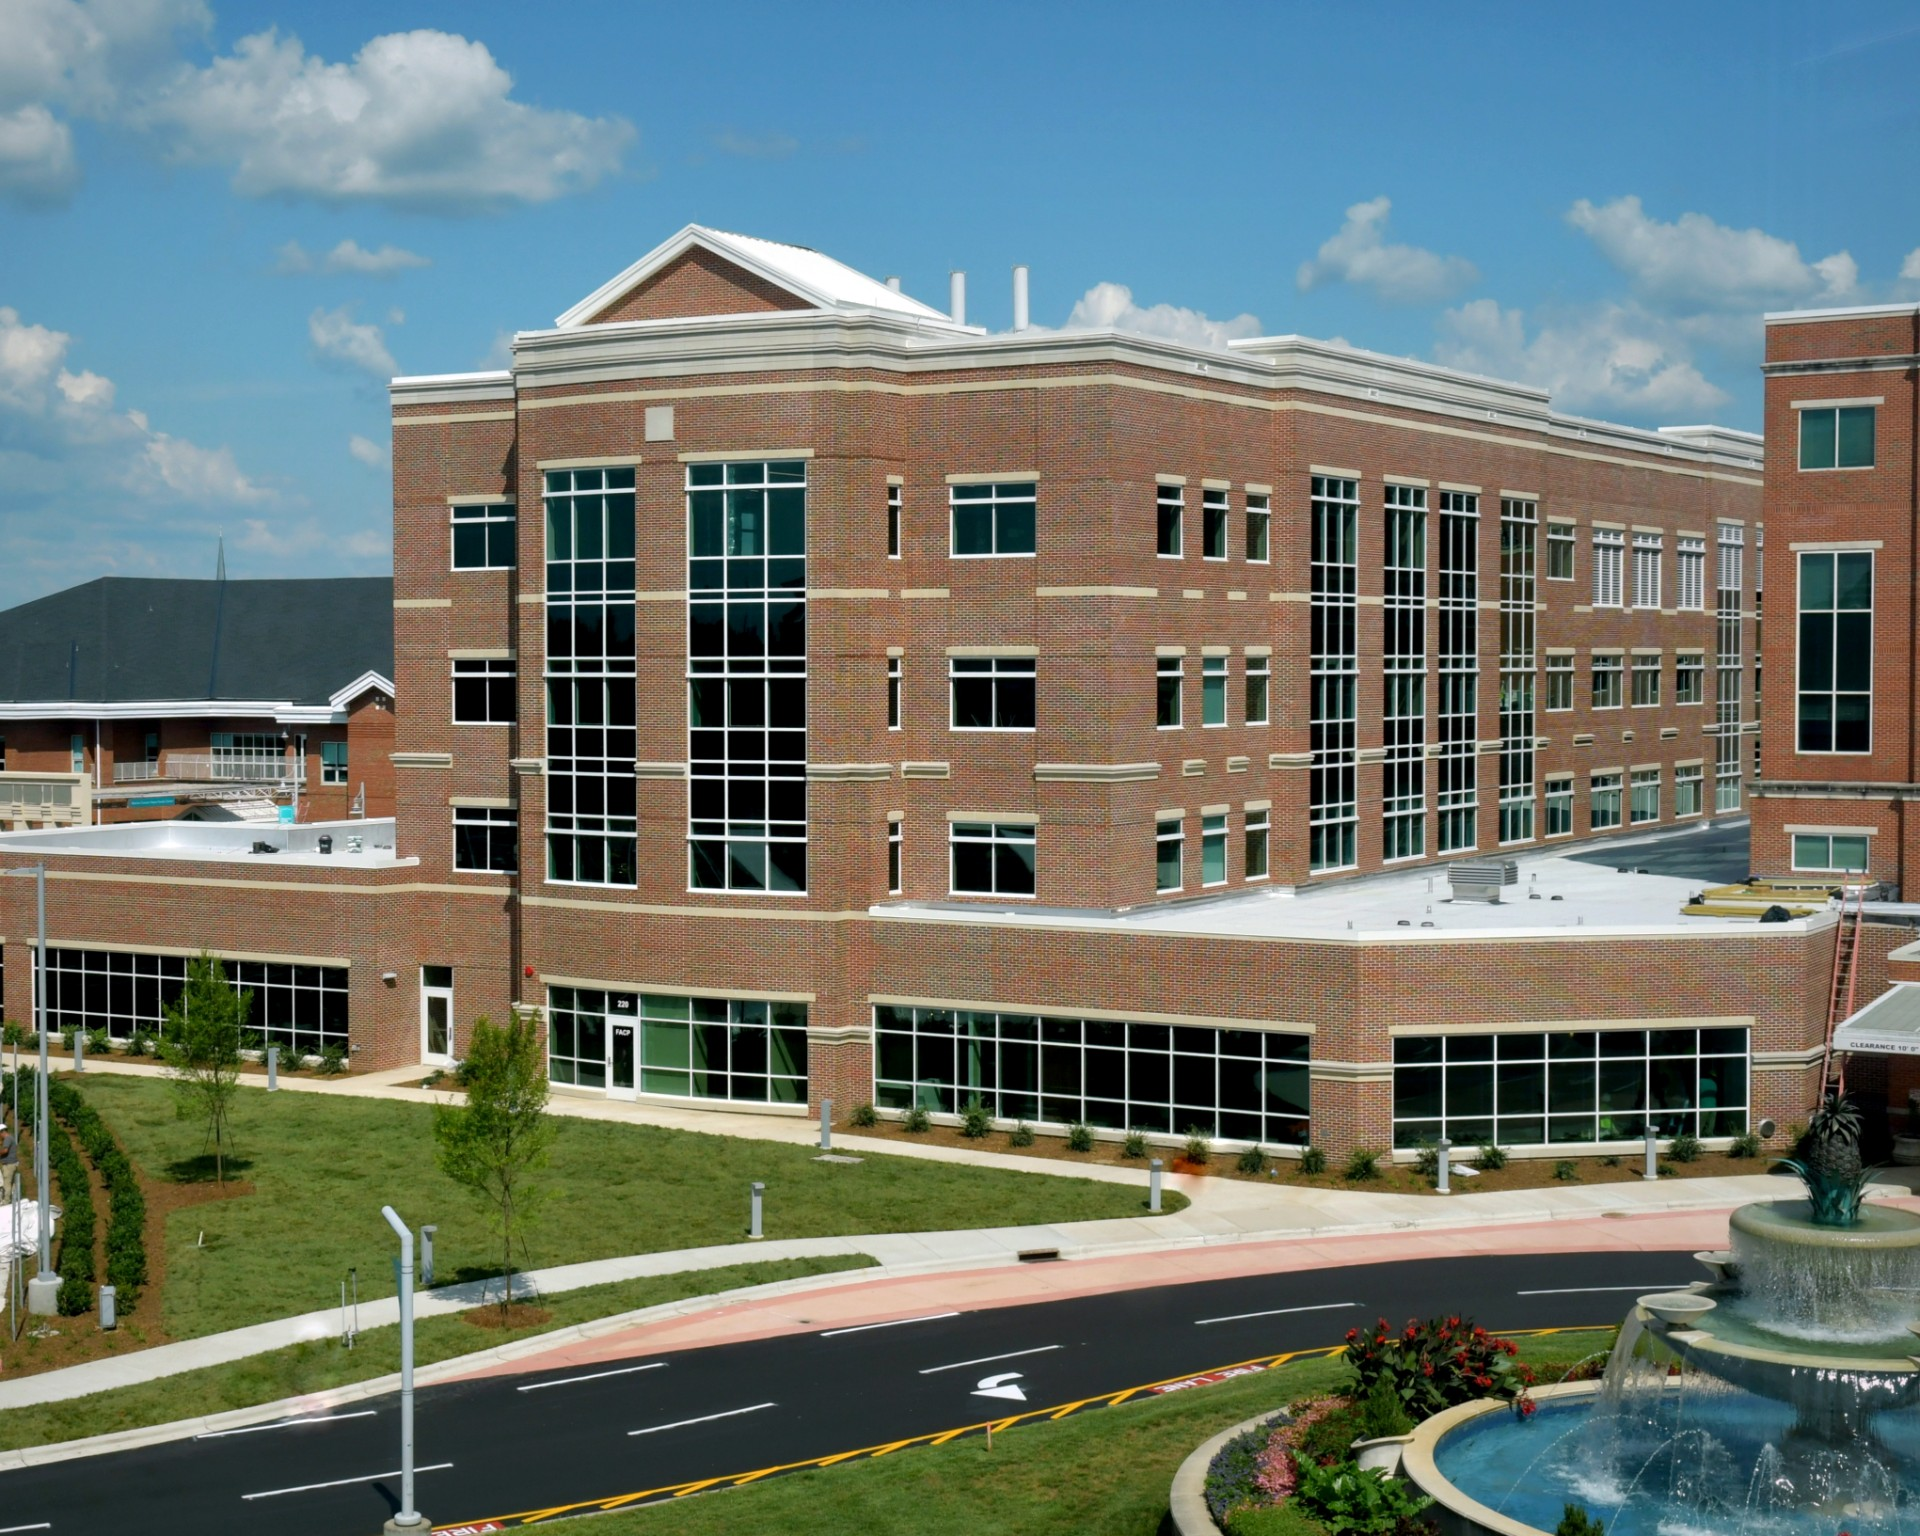 New Heart and Vascular Tower Expands Cardiovascular, Radiology Services for Patients in Cabarrus, Rowan County Regions